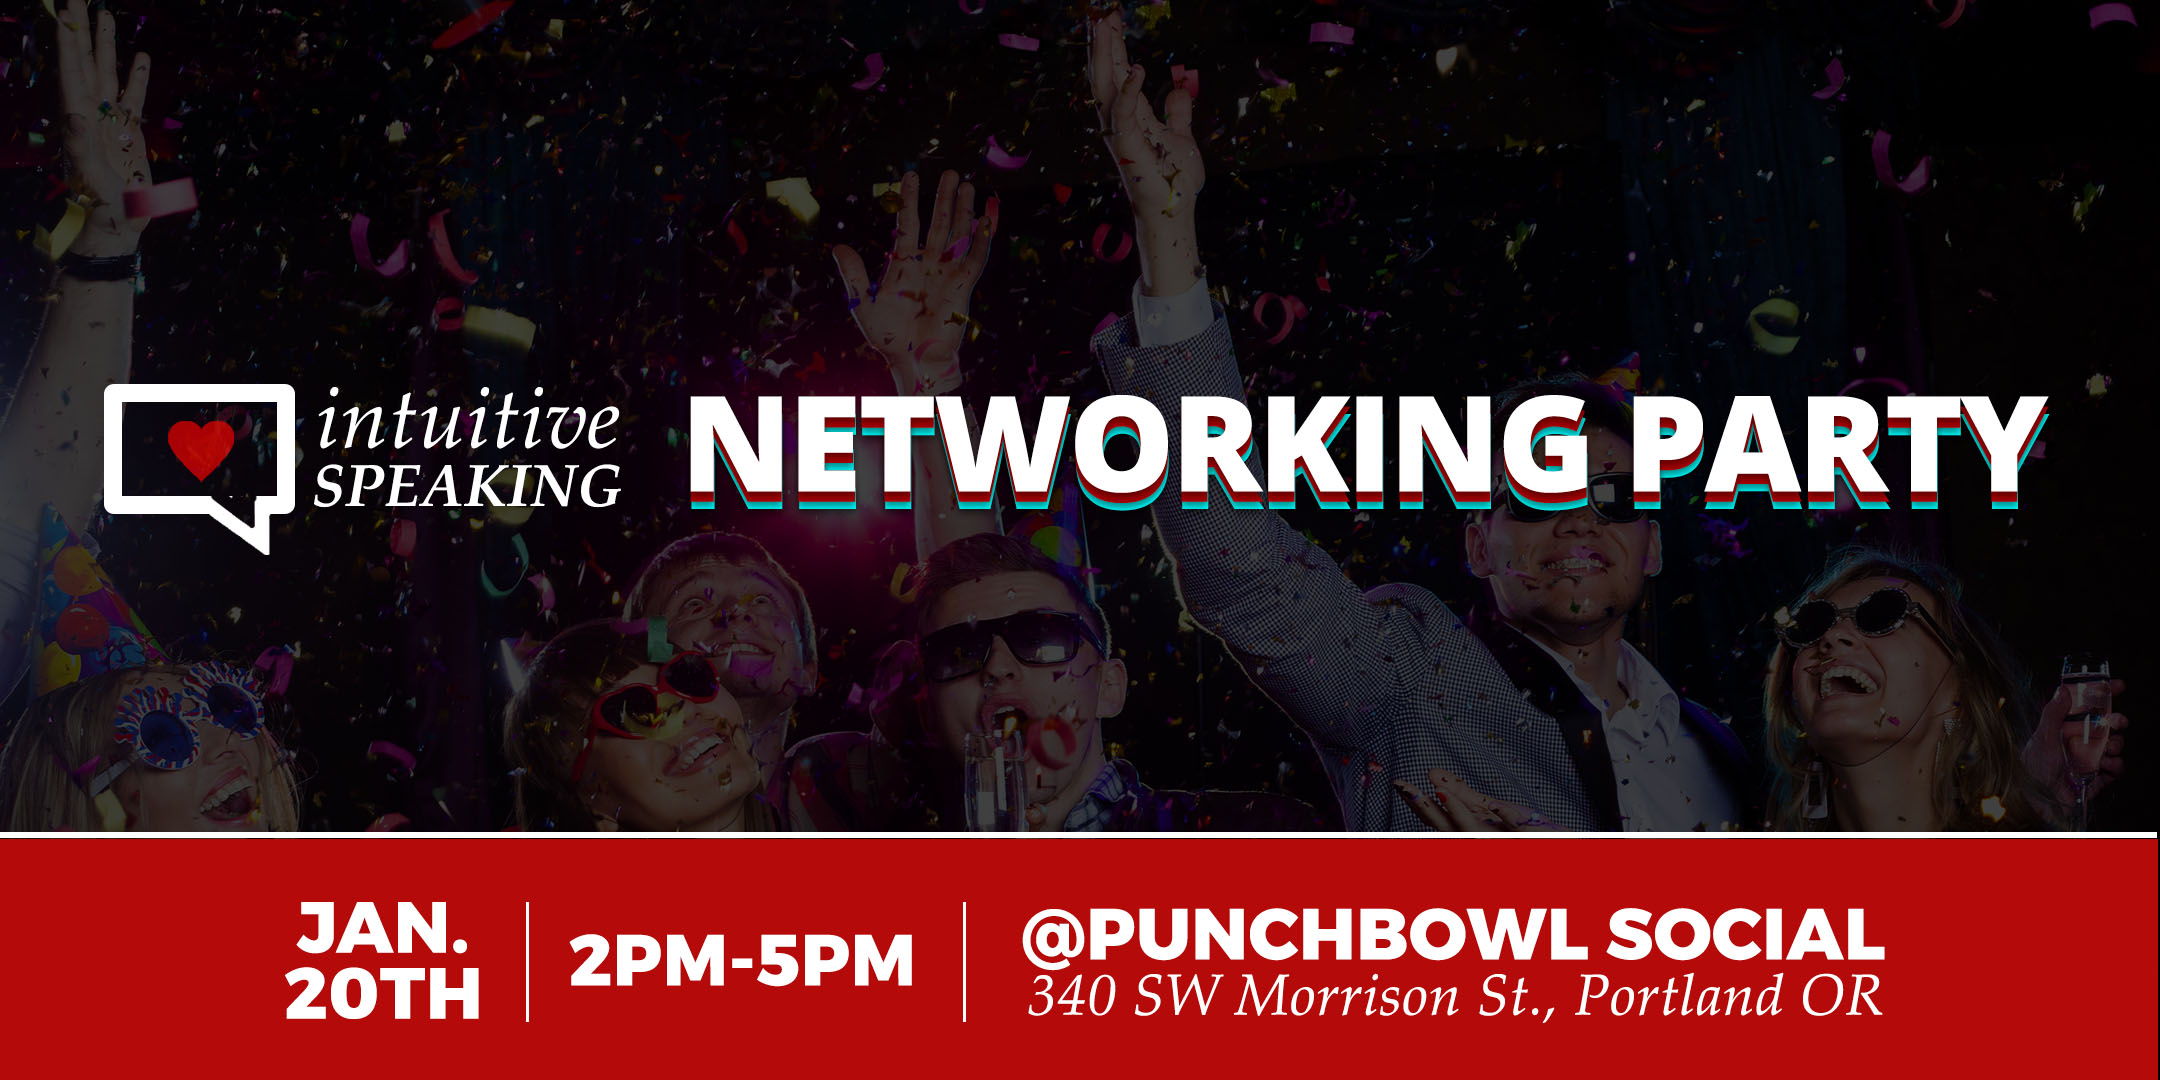 Intuitive Speaking - Networking Party